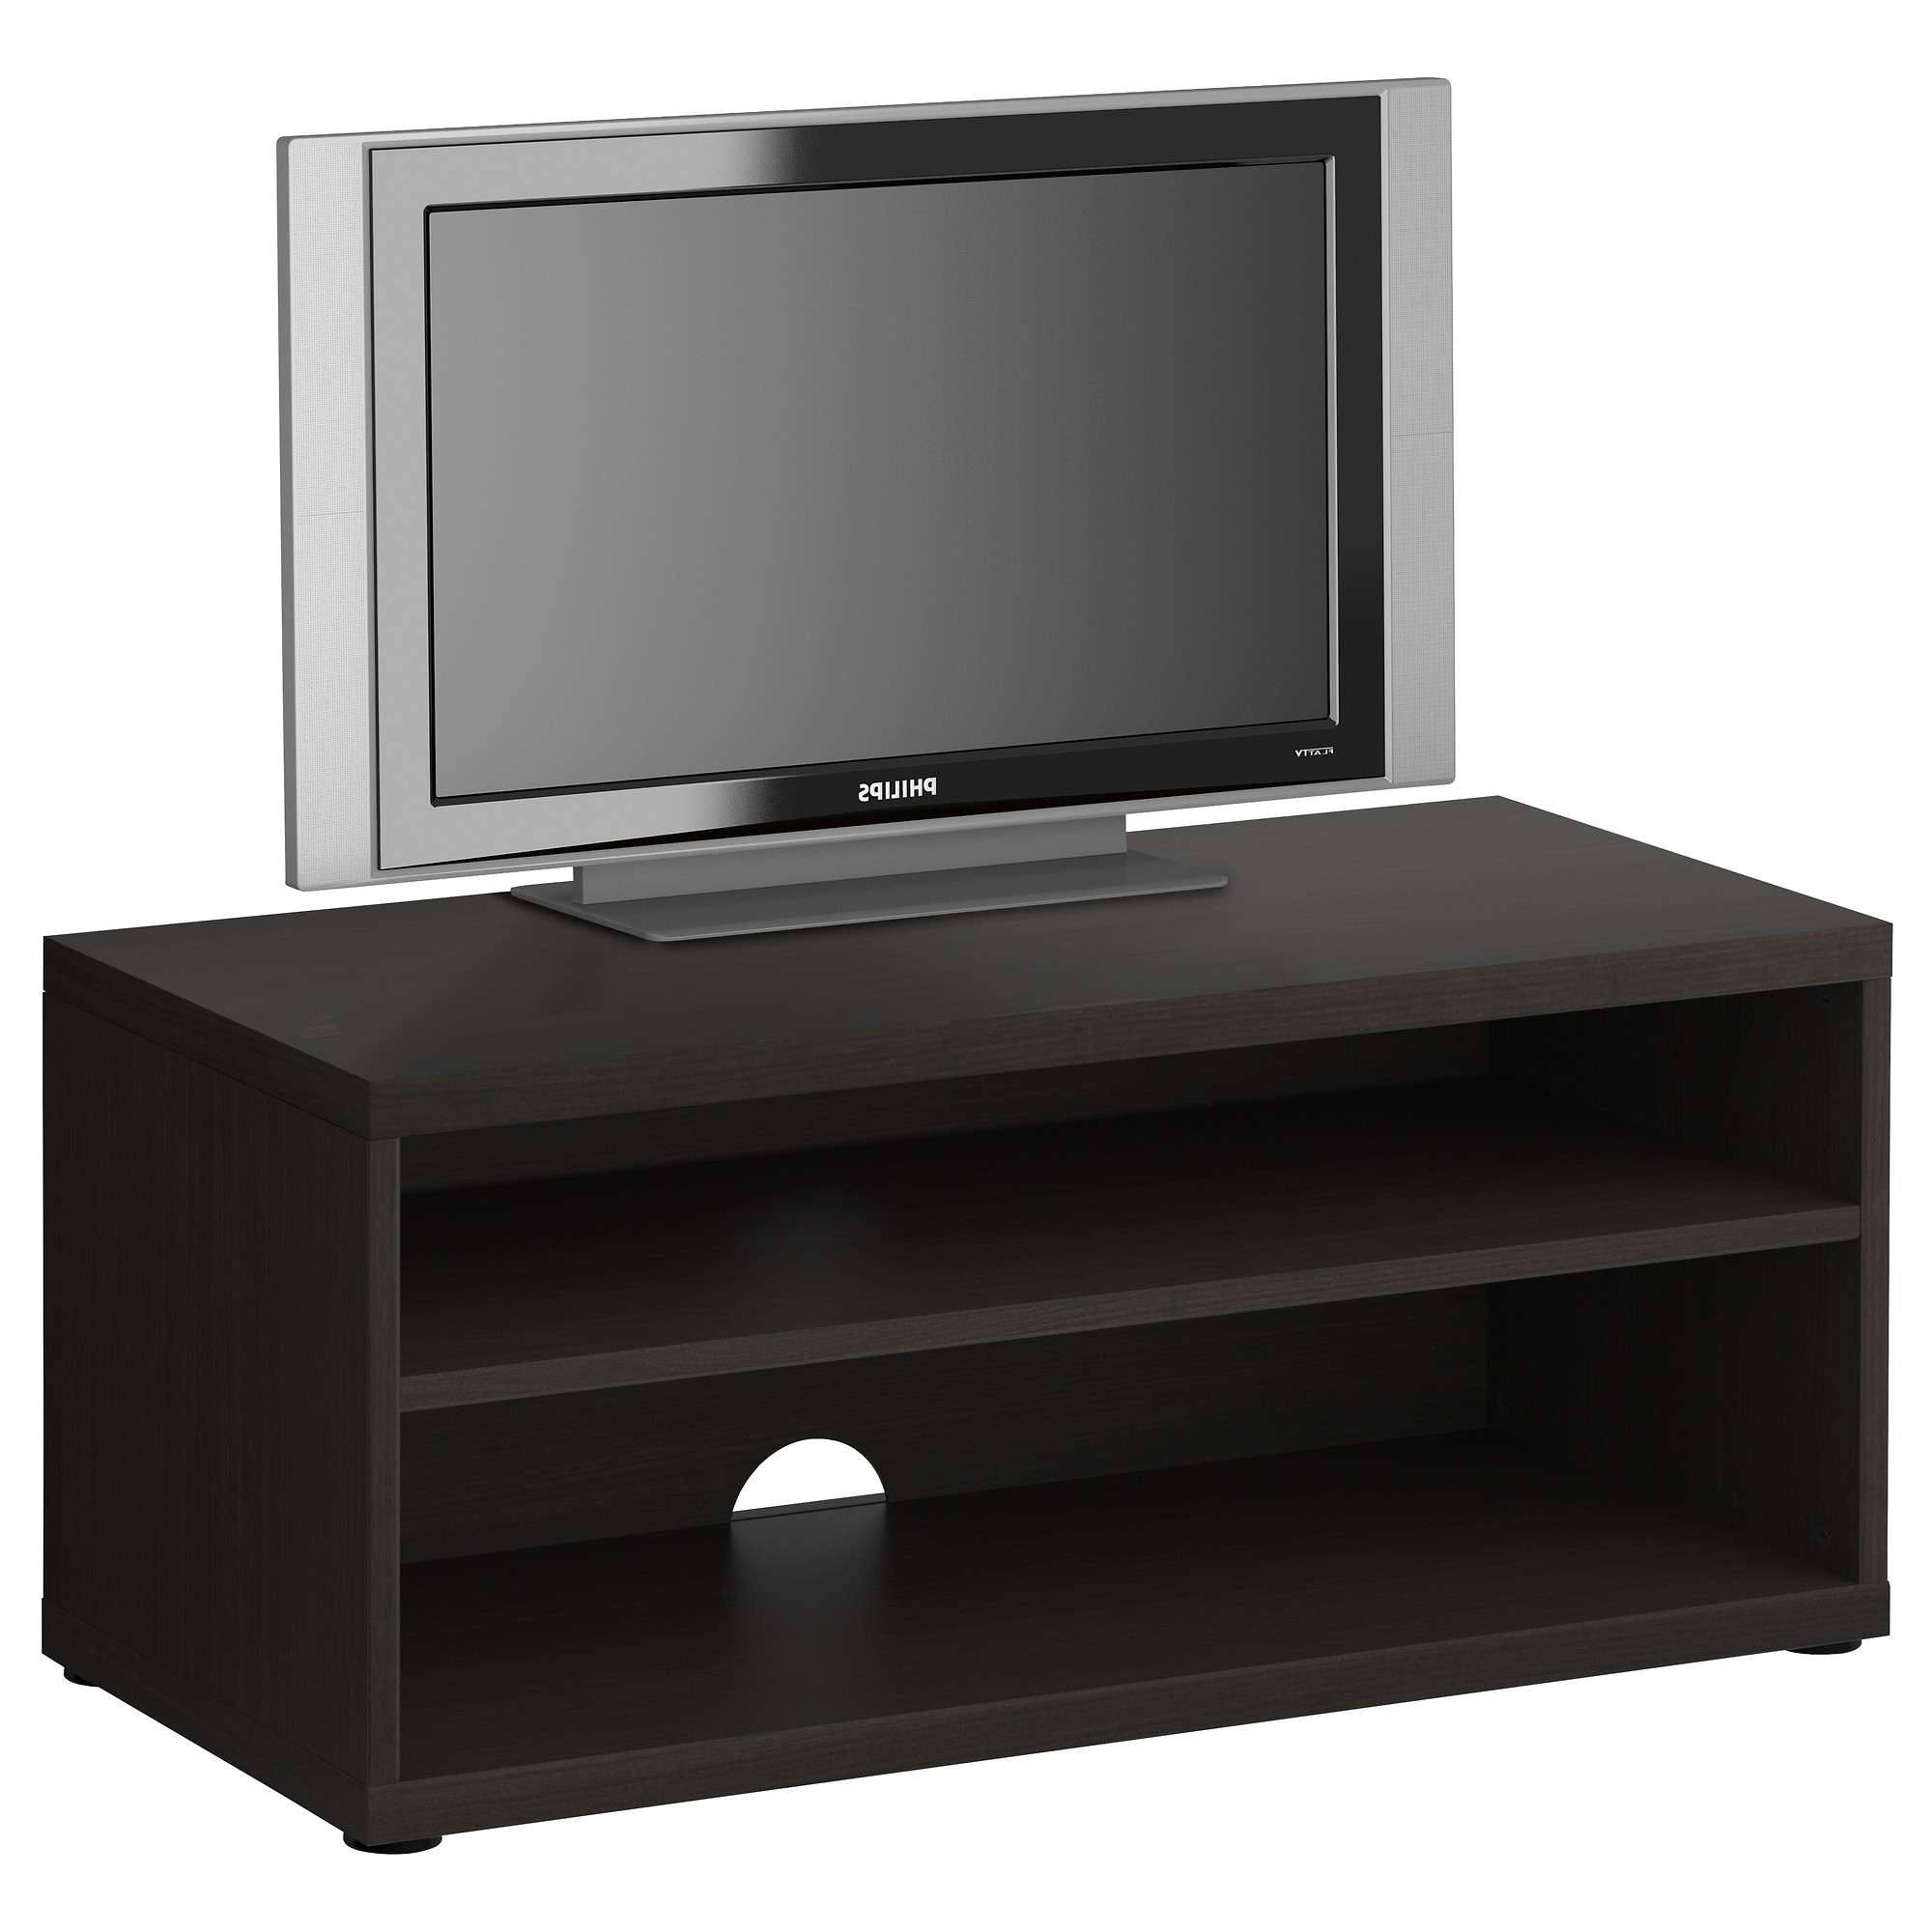 Wall Units: Tv Stand Ikea Small Tv Stand, Corner Tv Stands For In Small Black Tv Cabinets (View 20 of 20)